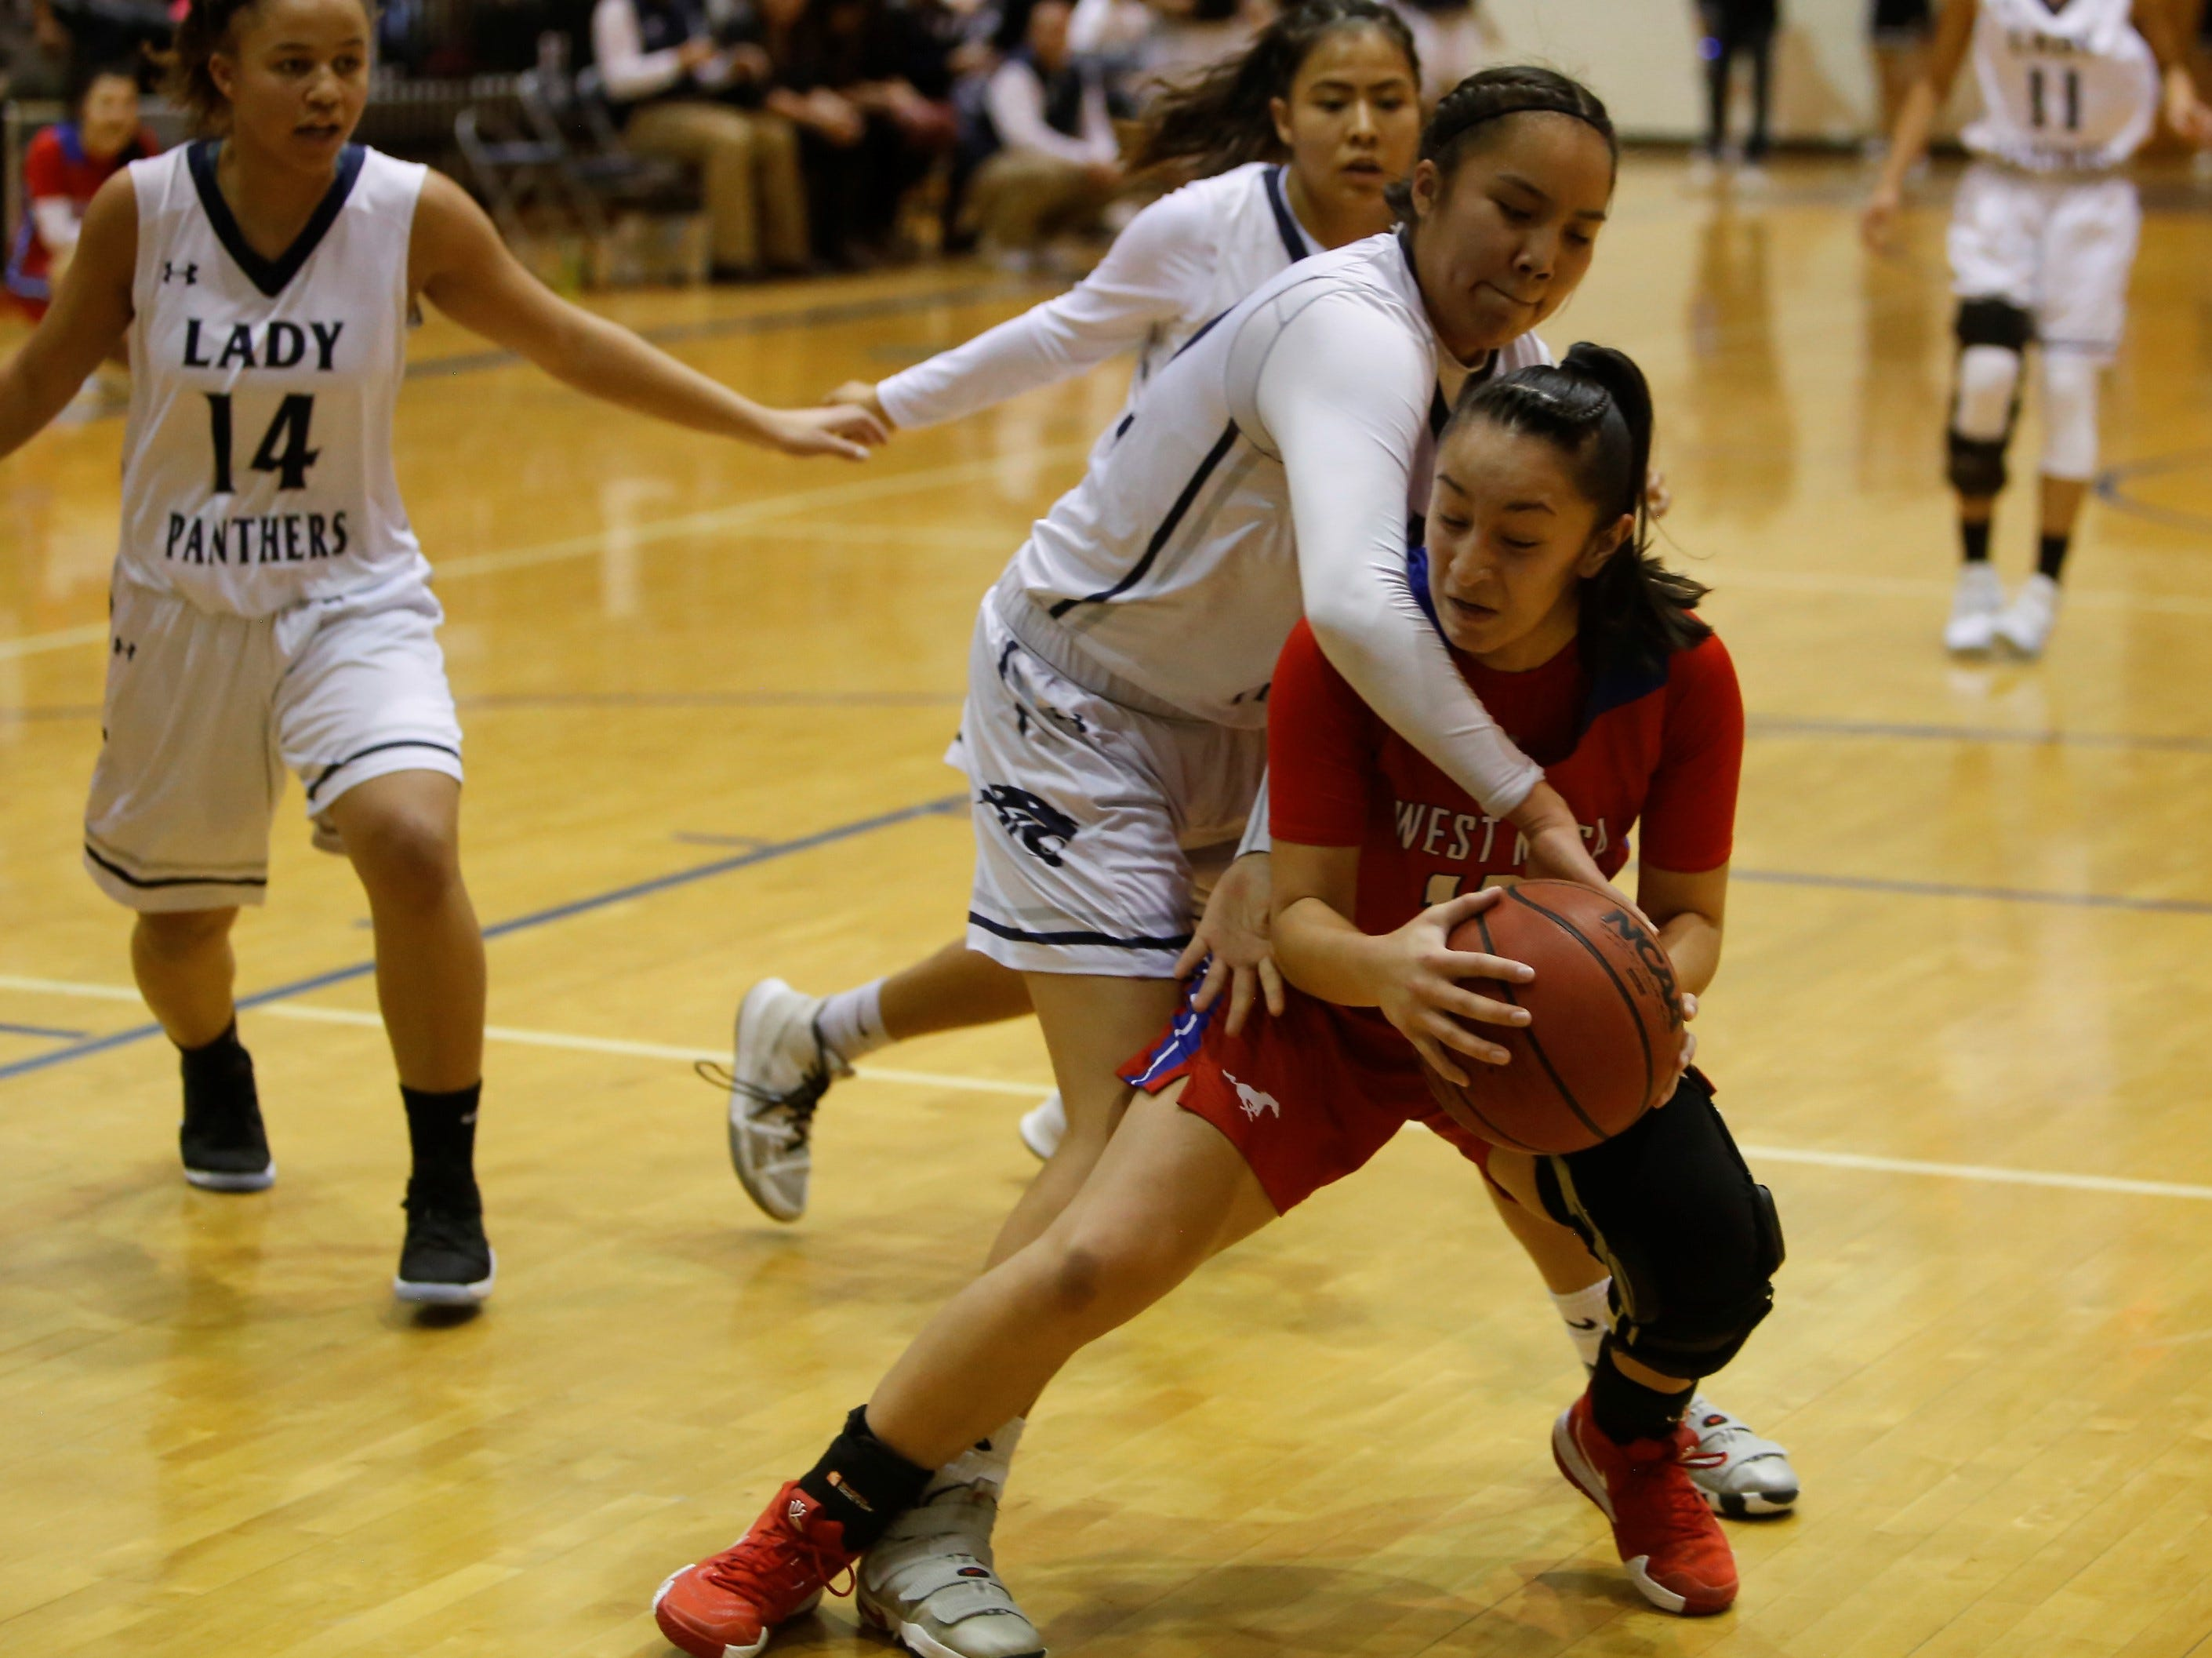 Piedra Vista's Lanae Billy fouls West Mesa's Esperanza Varoz under the basket during Saturday's District 2-5A tournament championship game at Jerry A. Conner Fieldhouse in Farmington.